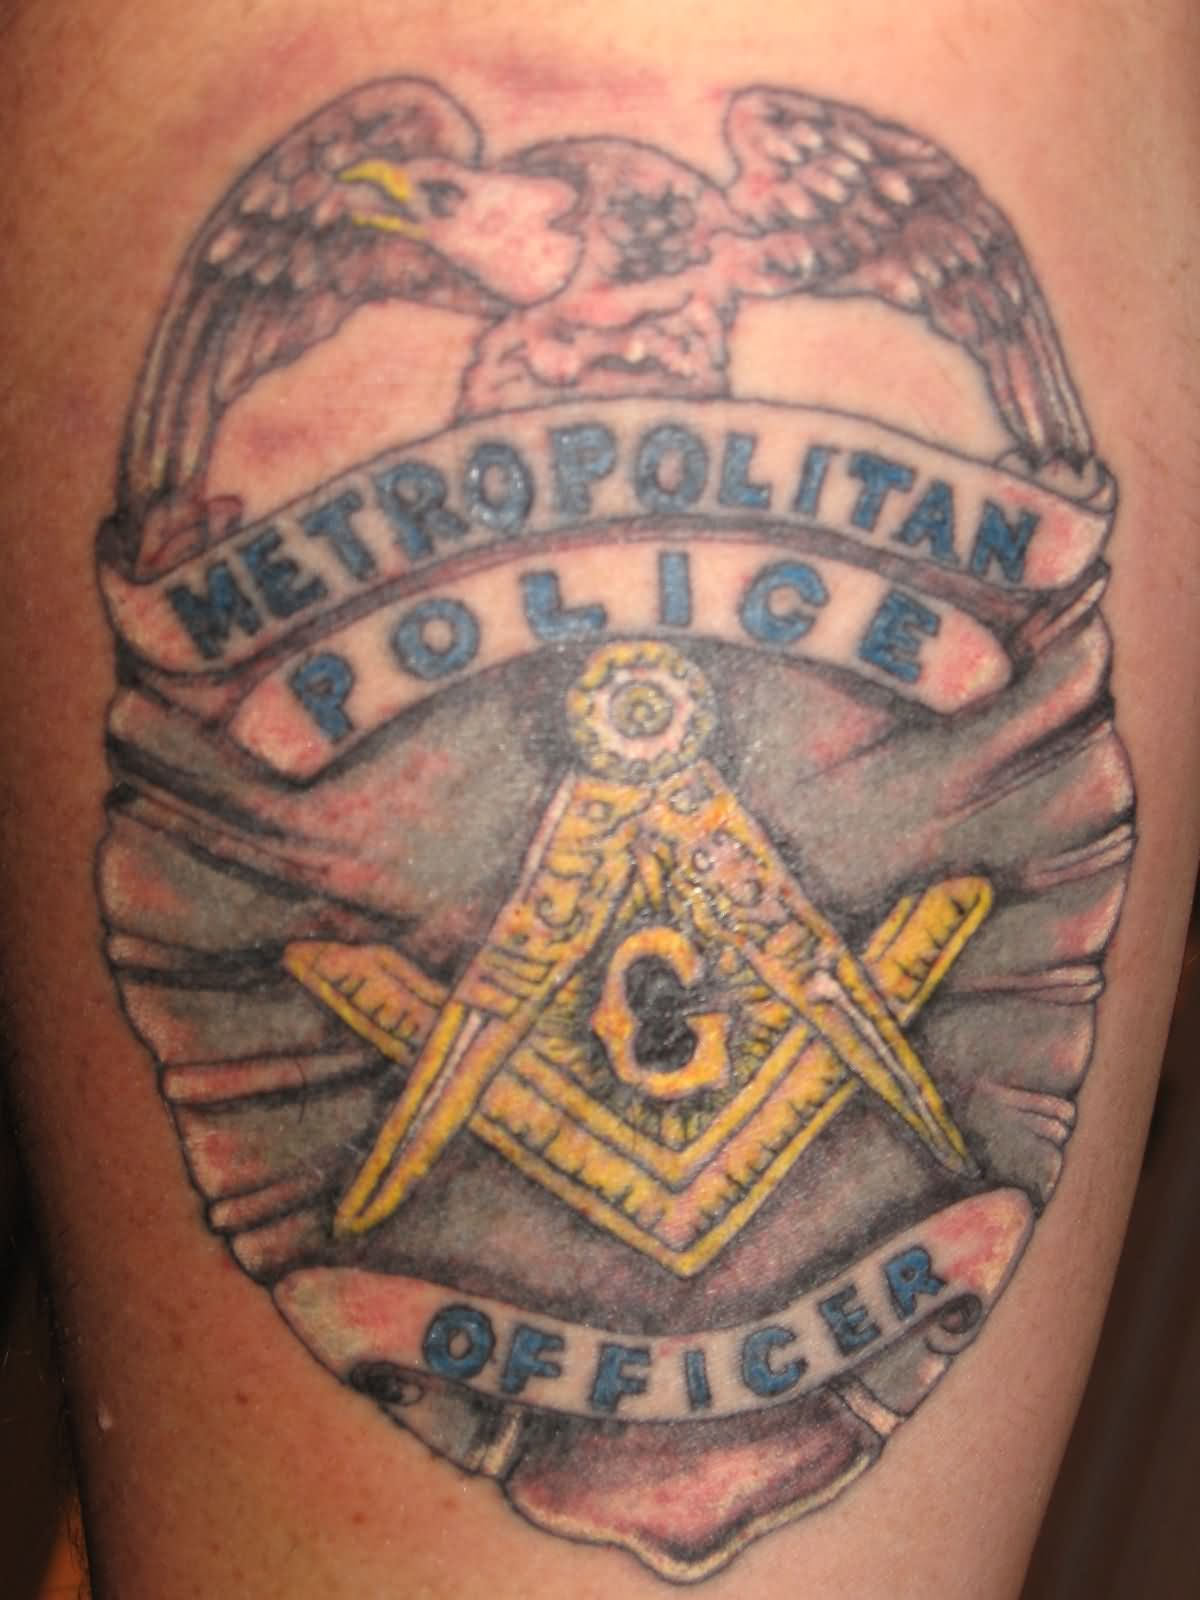 Occupation Tattoo Images & Designs